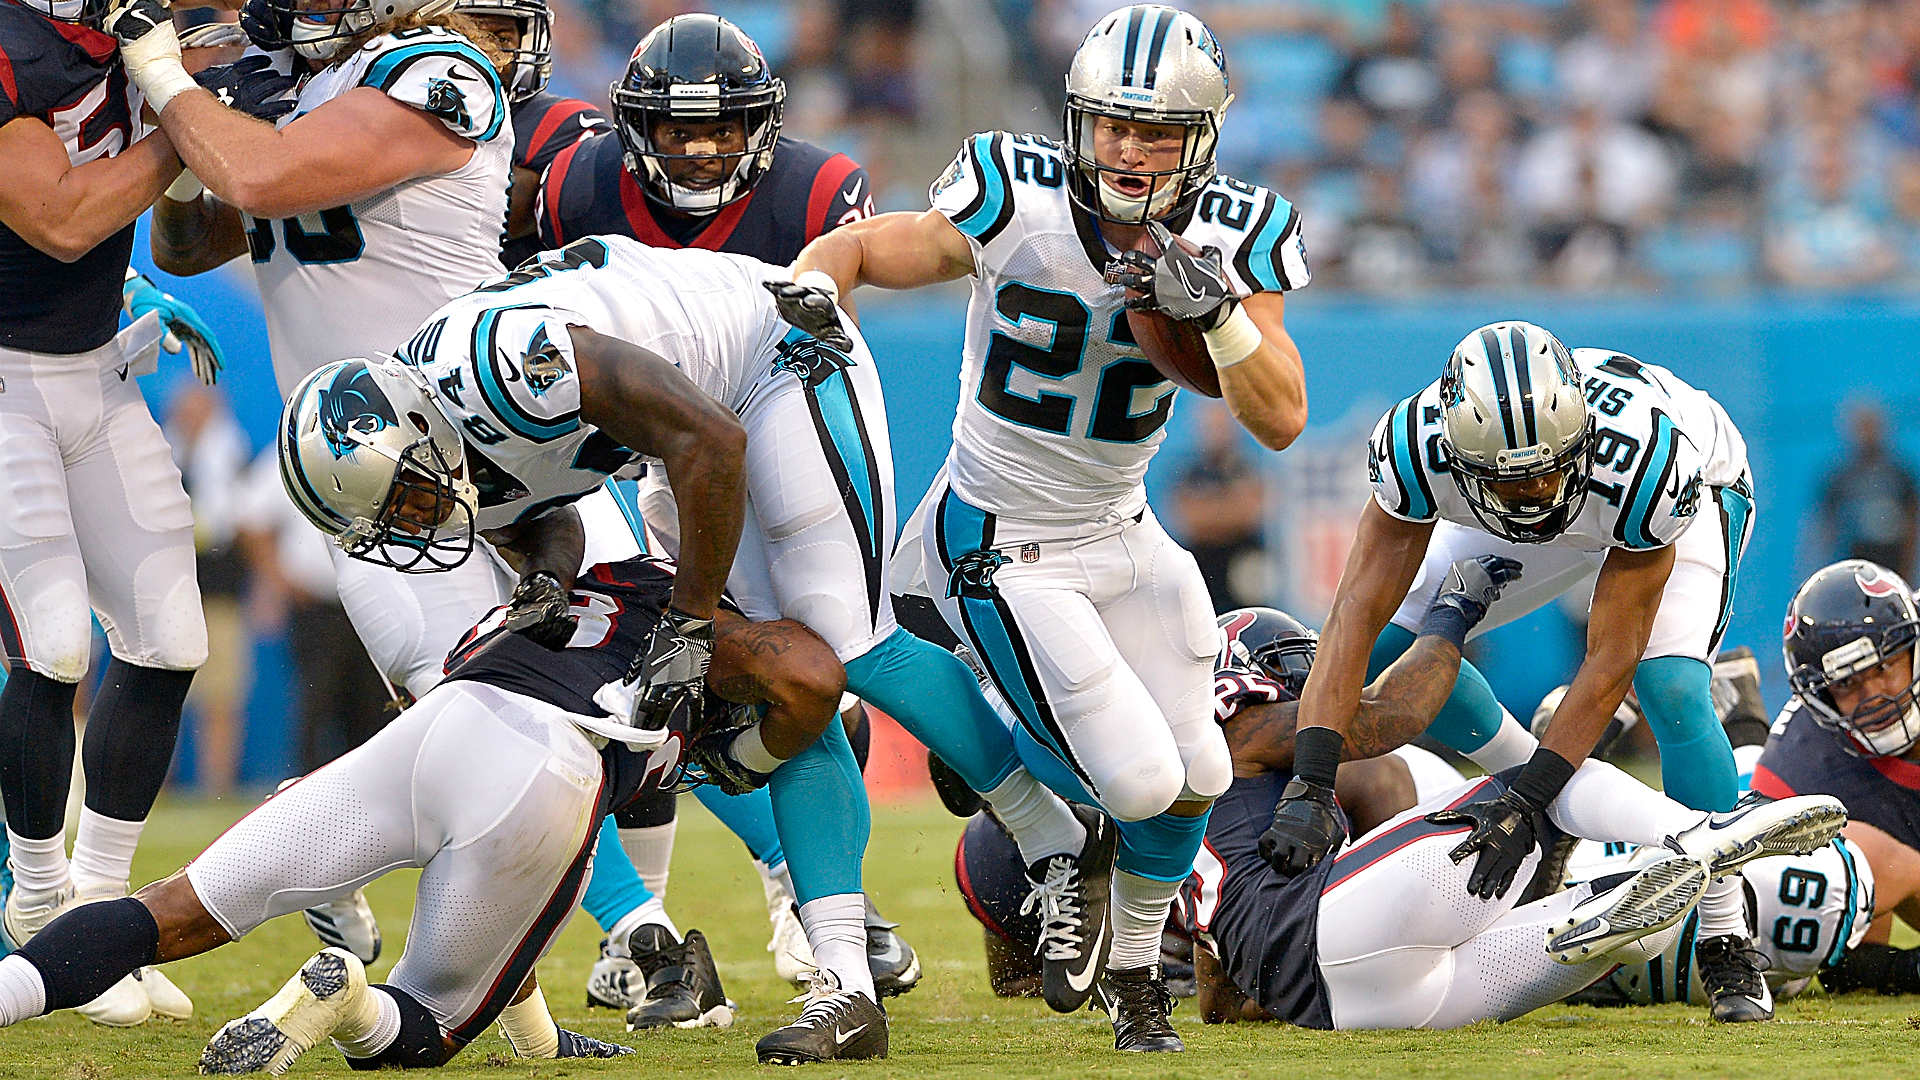 Christian Mccaffrey's Strong Panthers Debut Adds Mystery